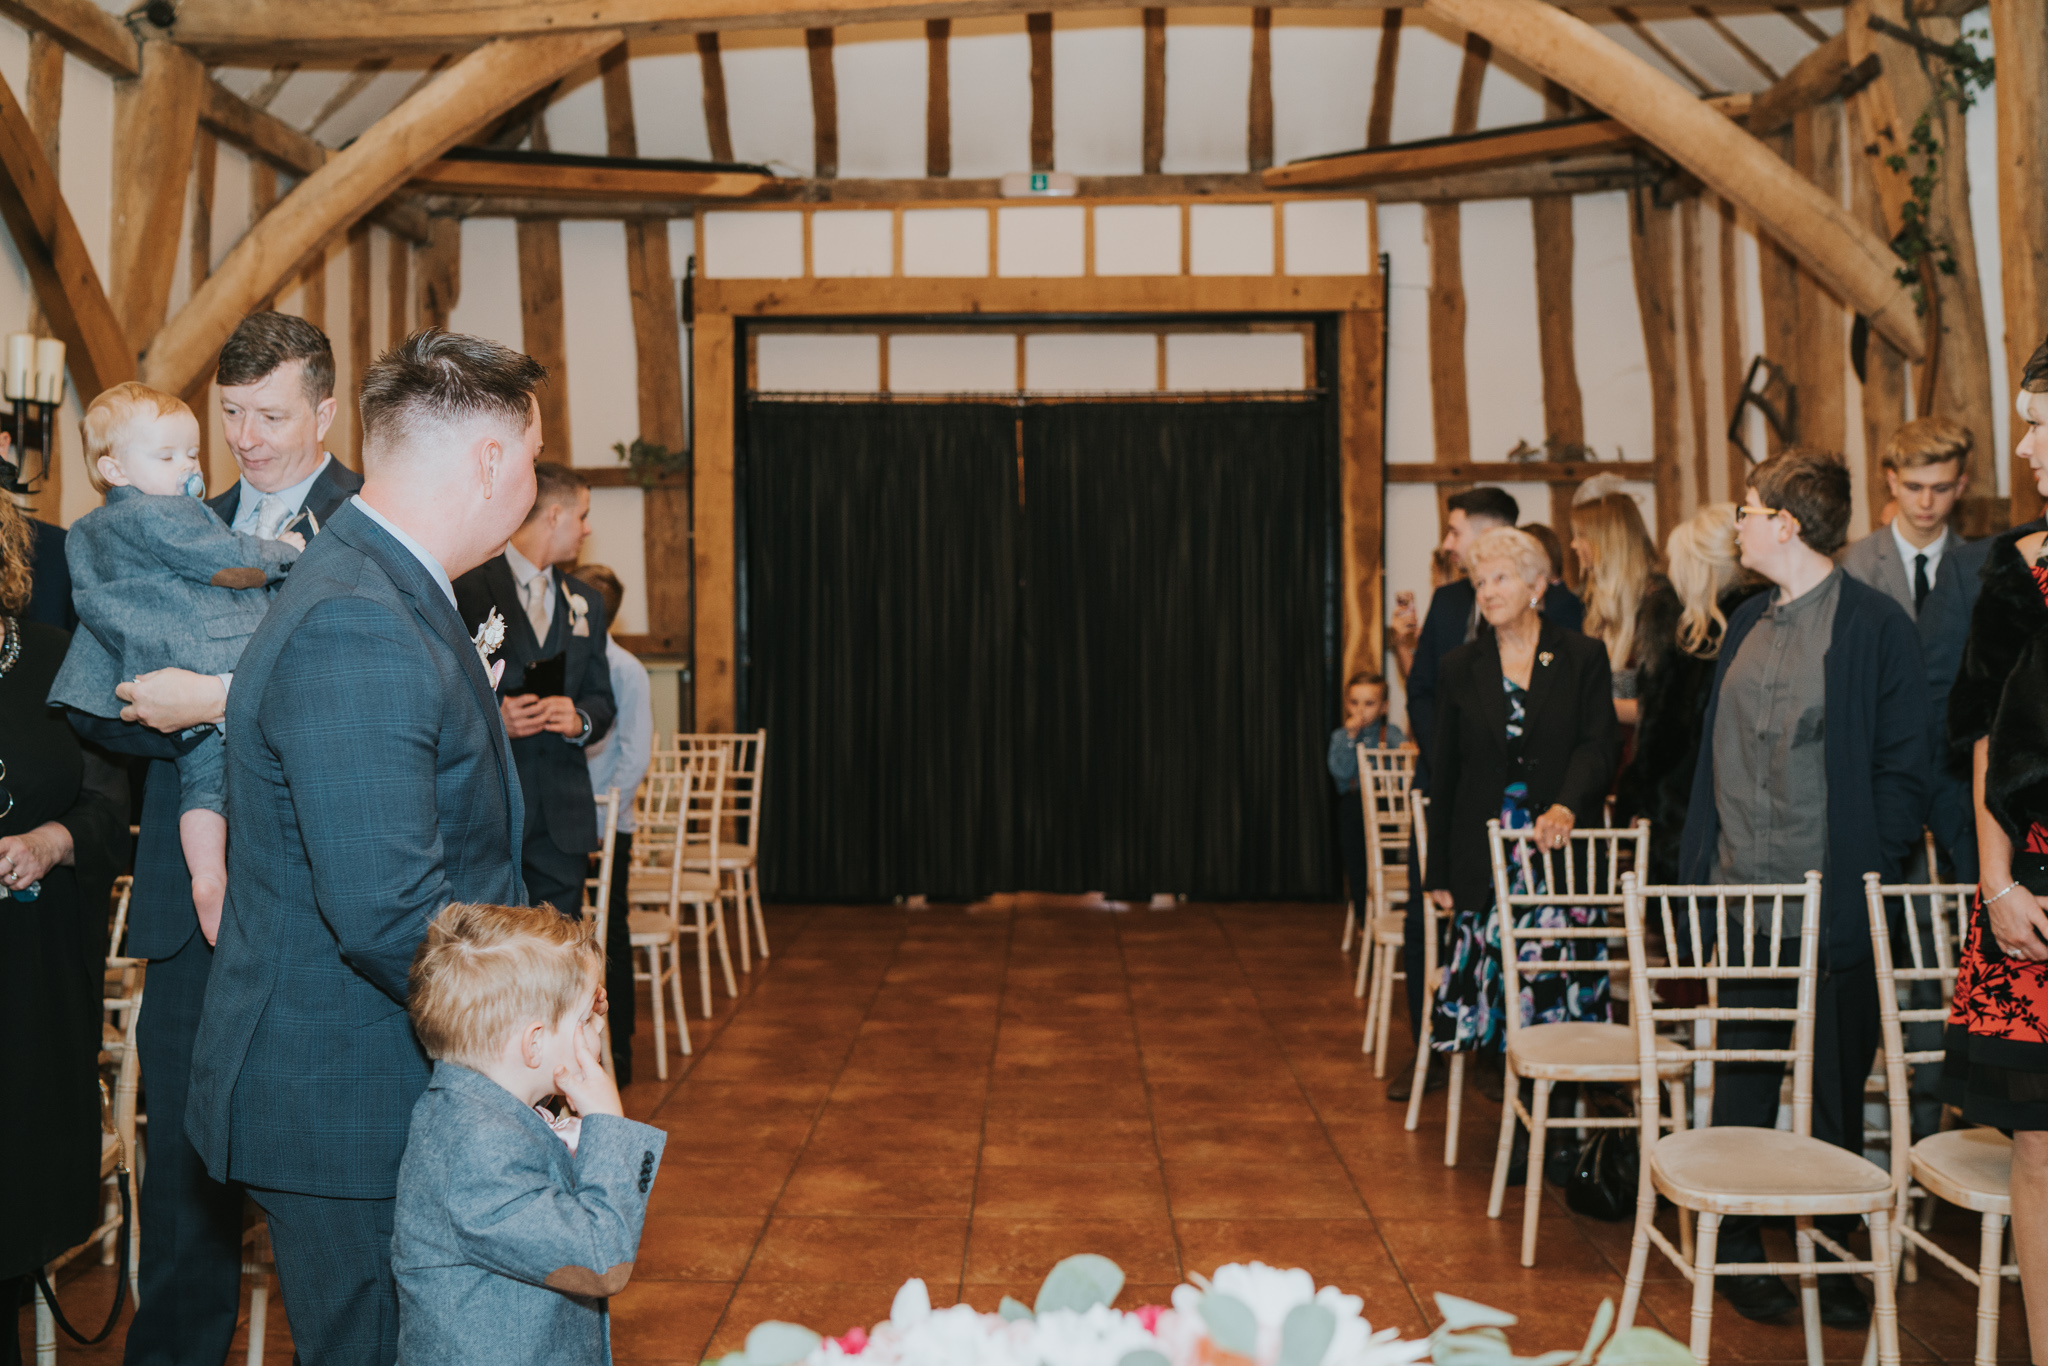 rhia-james-rustic-crabbs-barn-vintage-50s-retro-wedding-grace-elizabeth-colchester-essex-alternative-relaxed-wedding-family-photography-devon-suffolk-norfolk-essex (63 of 138).jpg